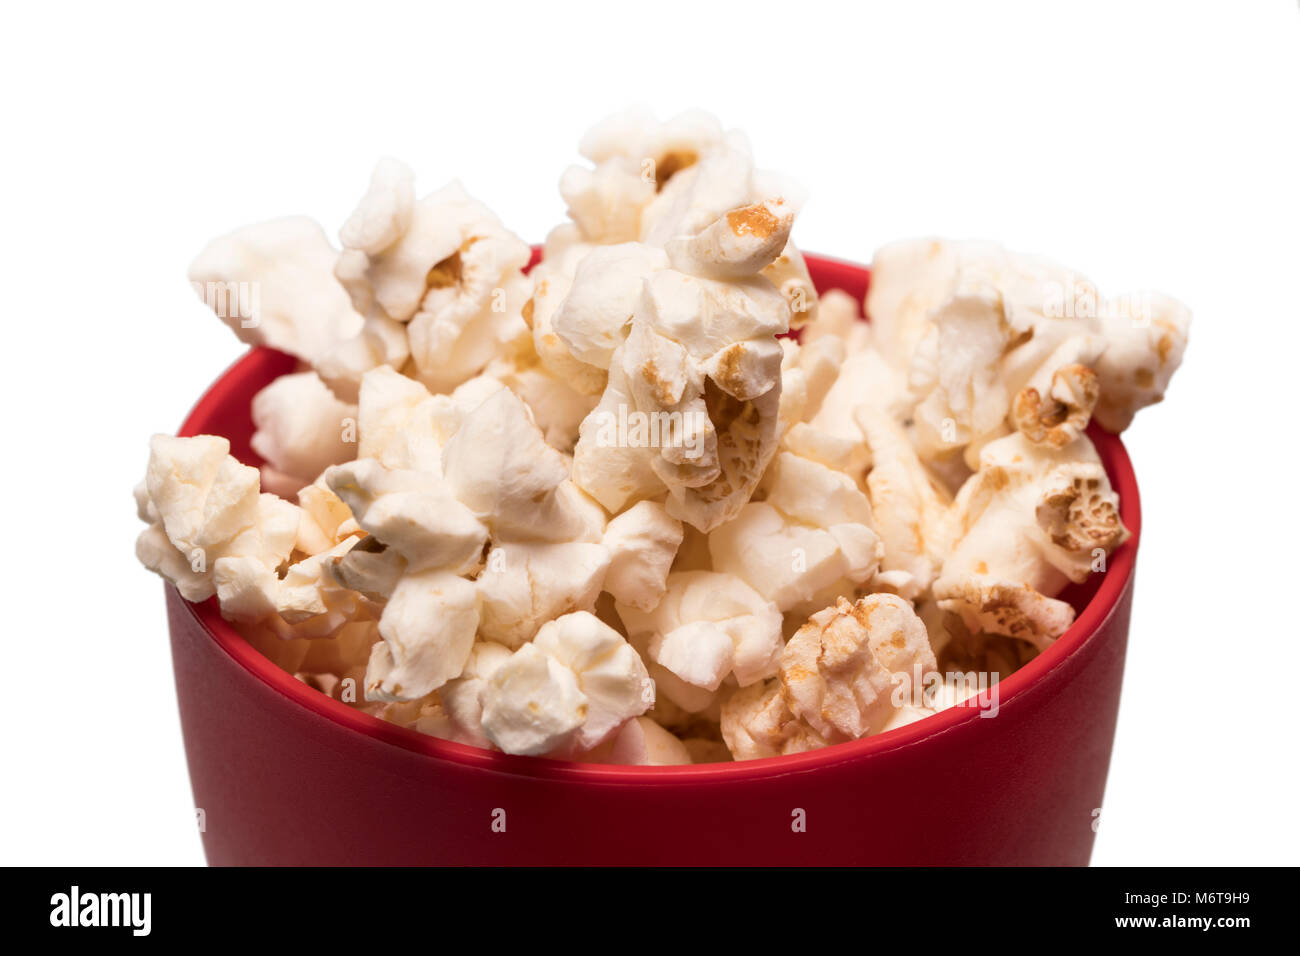 popcorn in a red bowl top view. Stock Photo